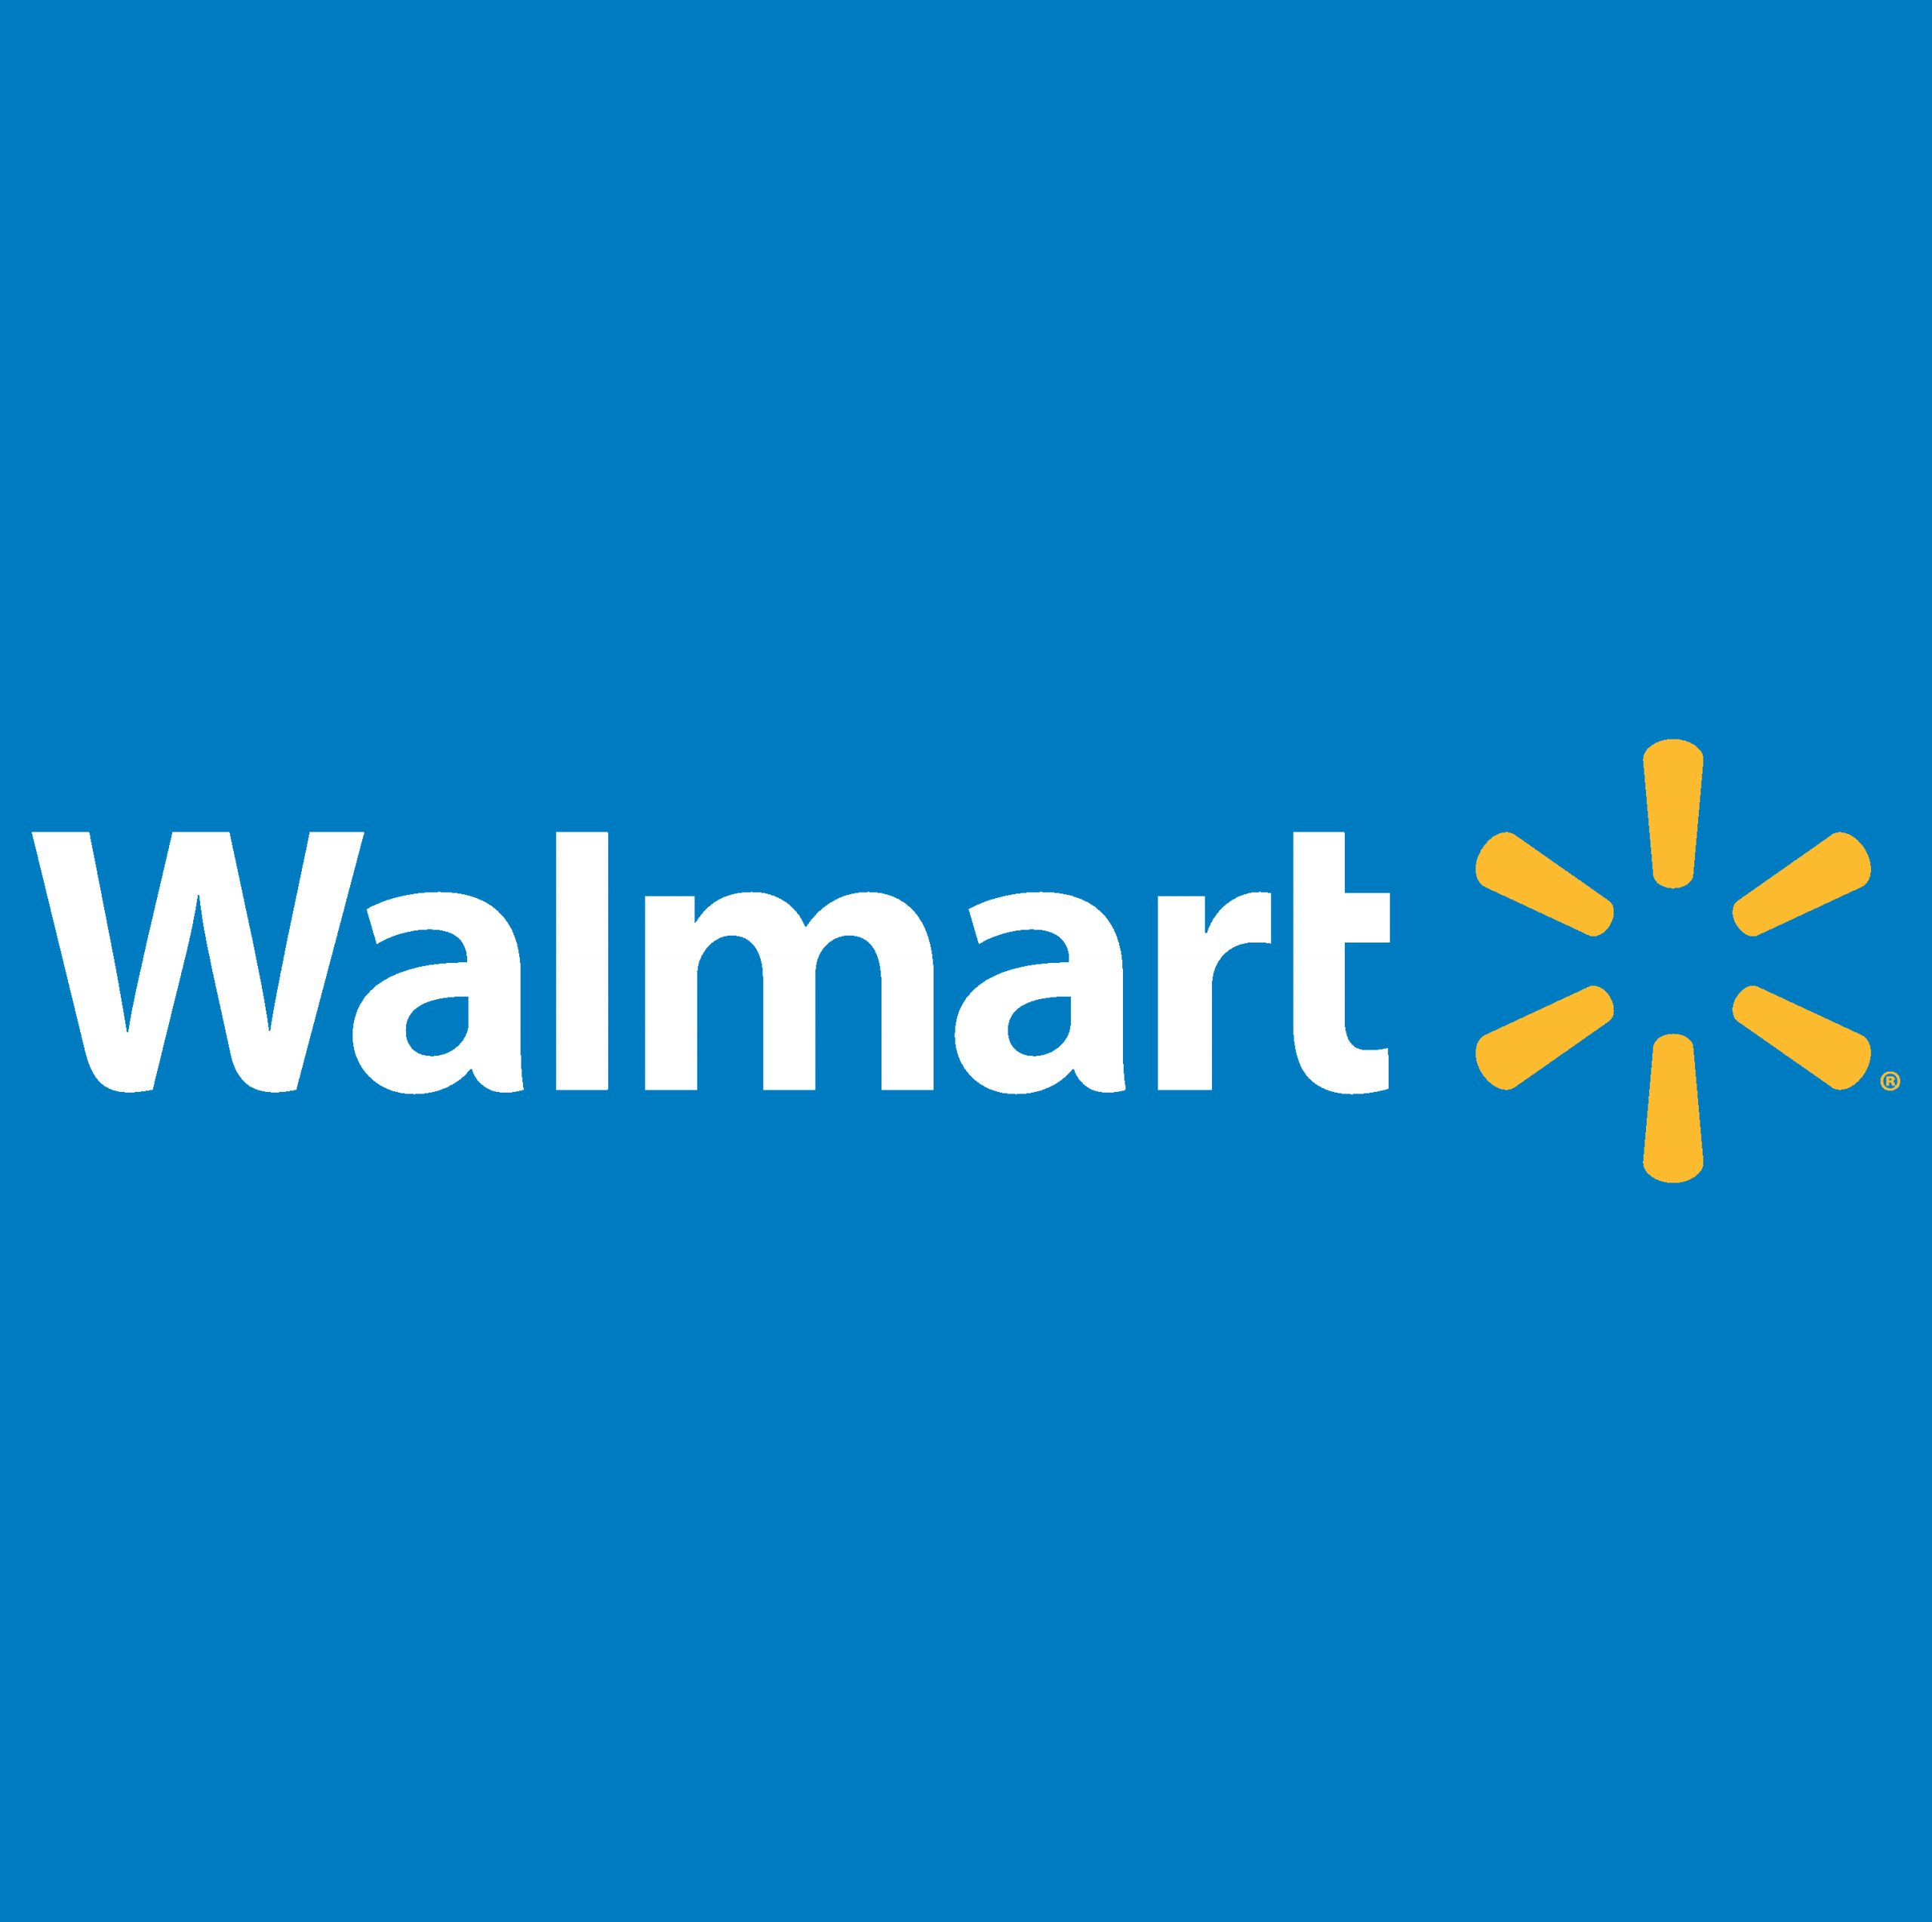 Walmart back on track with Produce 2.0